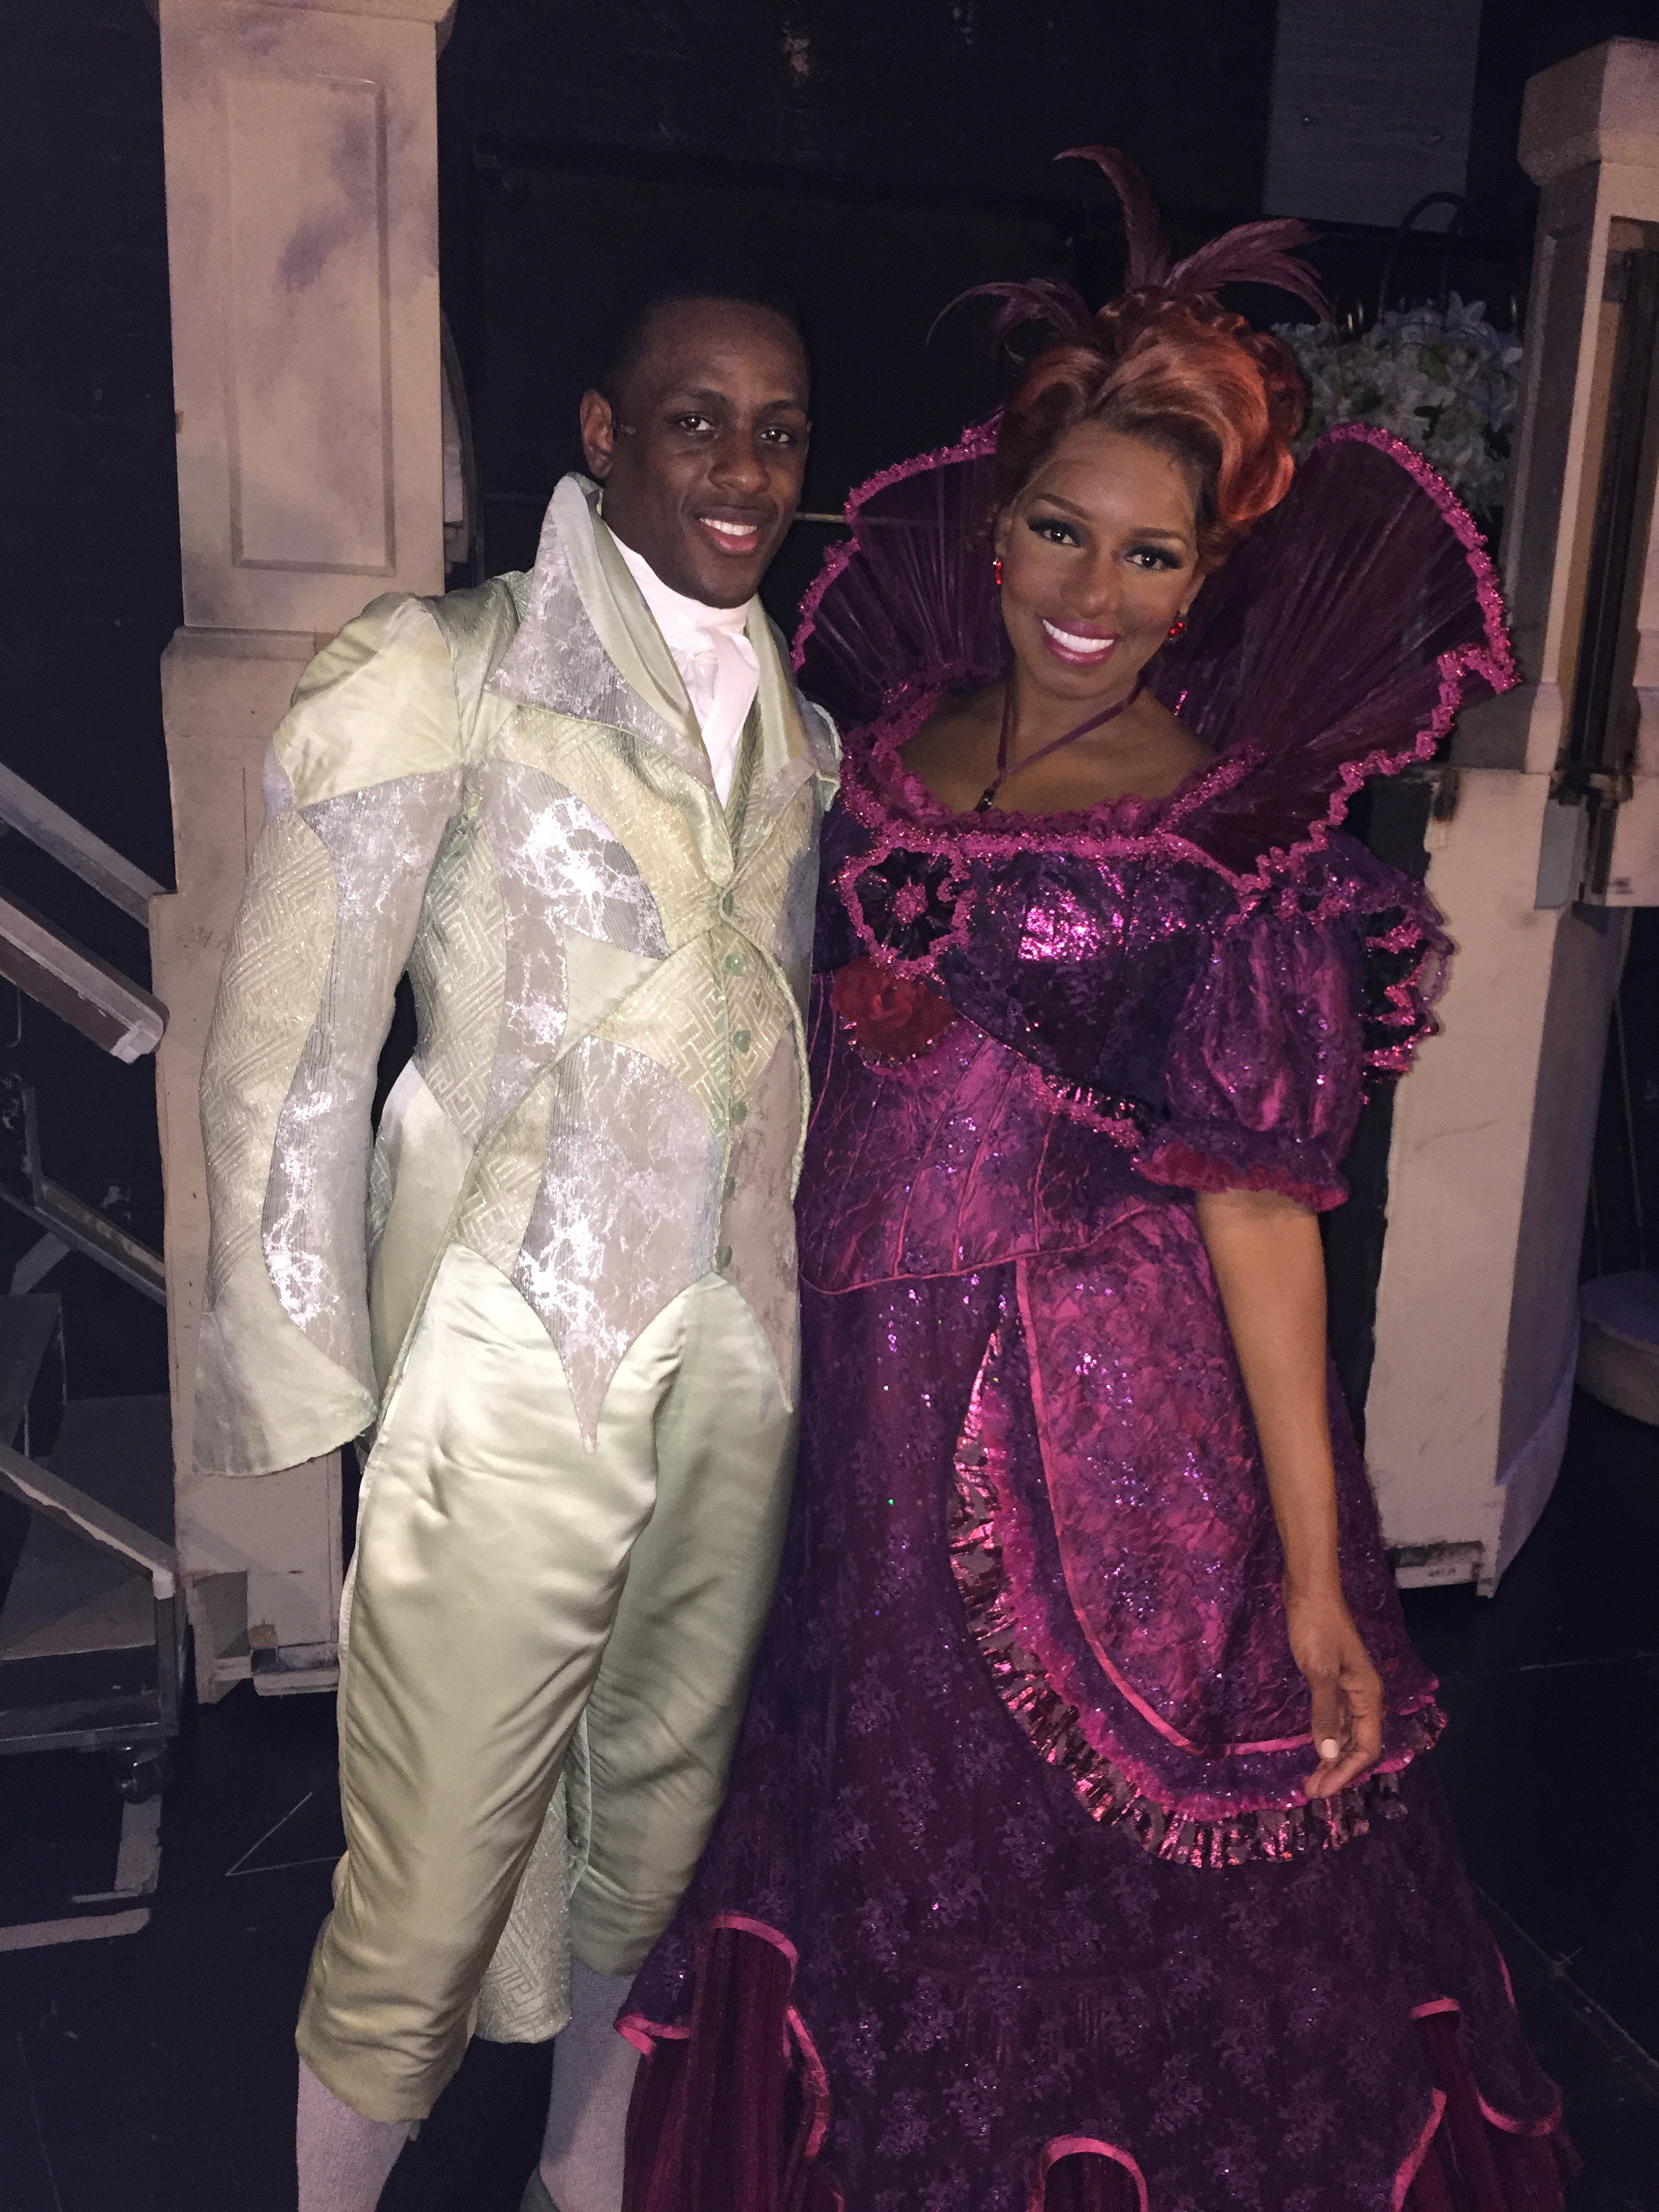 Darius with reality TV and sitcom star, Nene Leakes